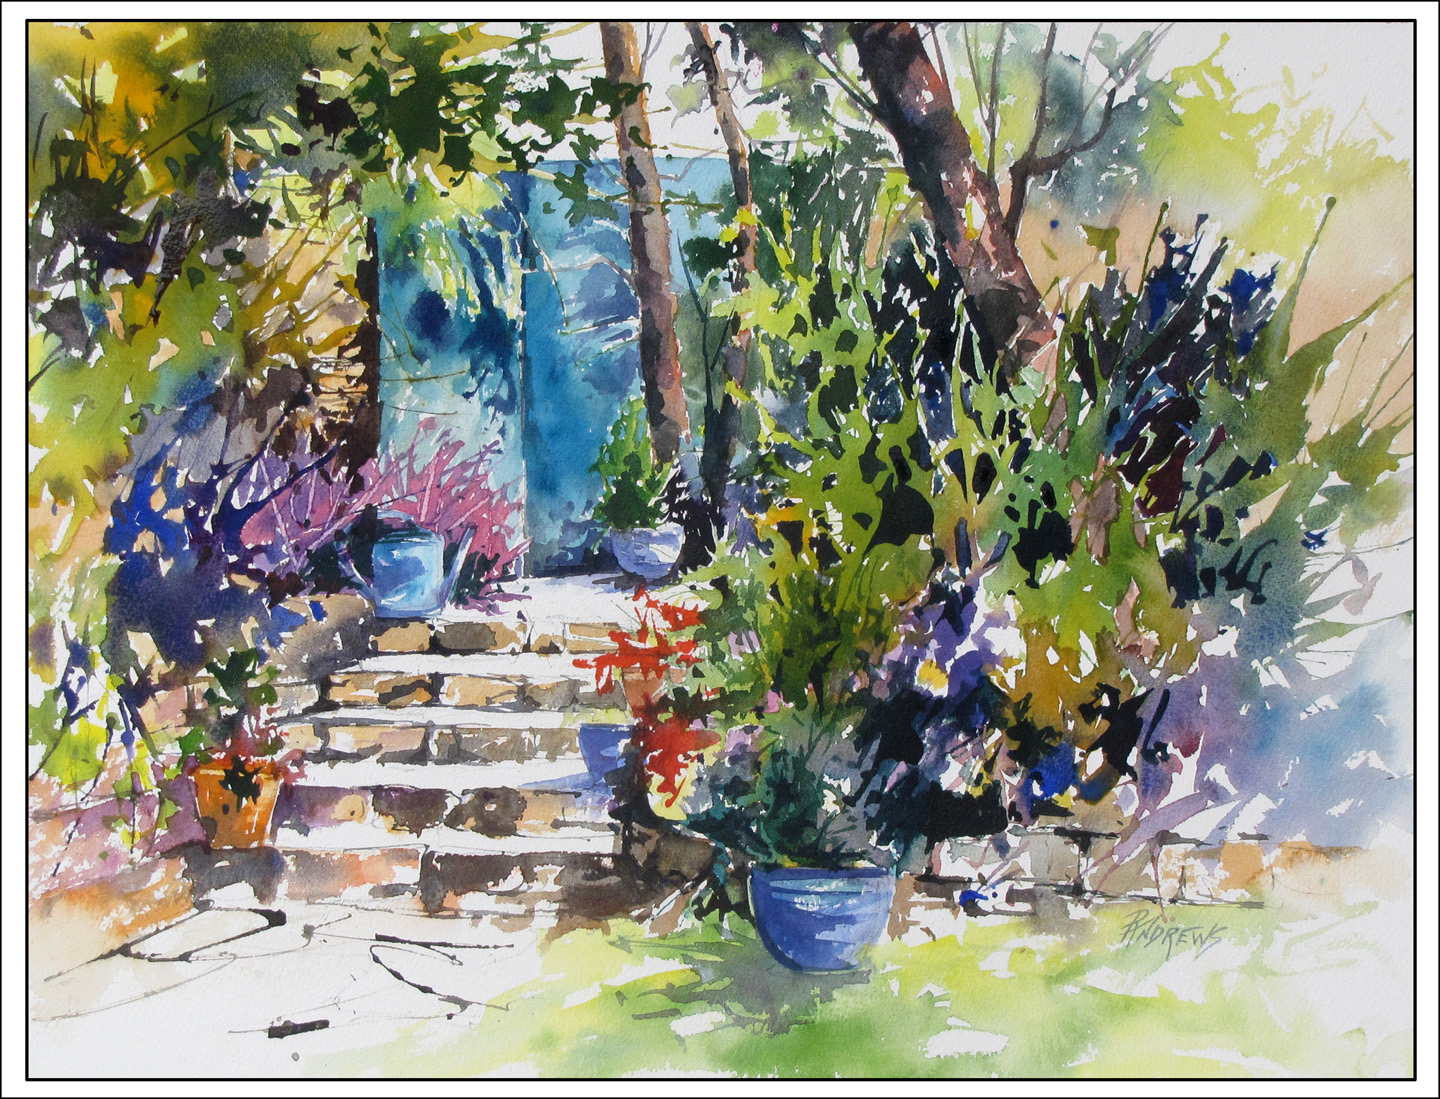 Watercolor artist in texas - Garden Tranquility France Watercolor Texas Artist Rae Andrews